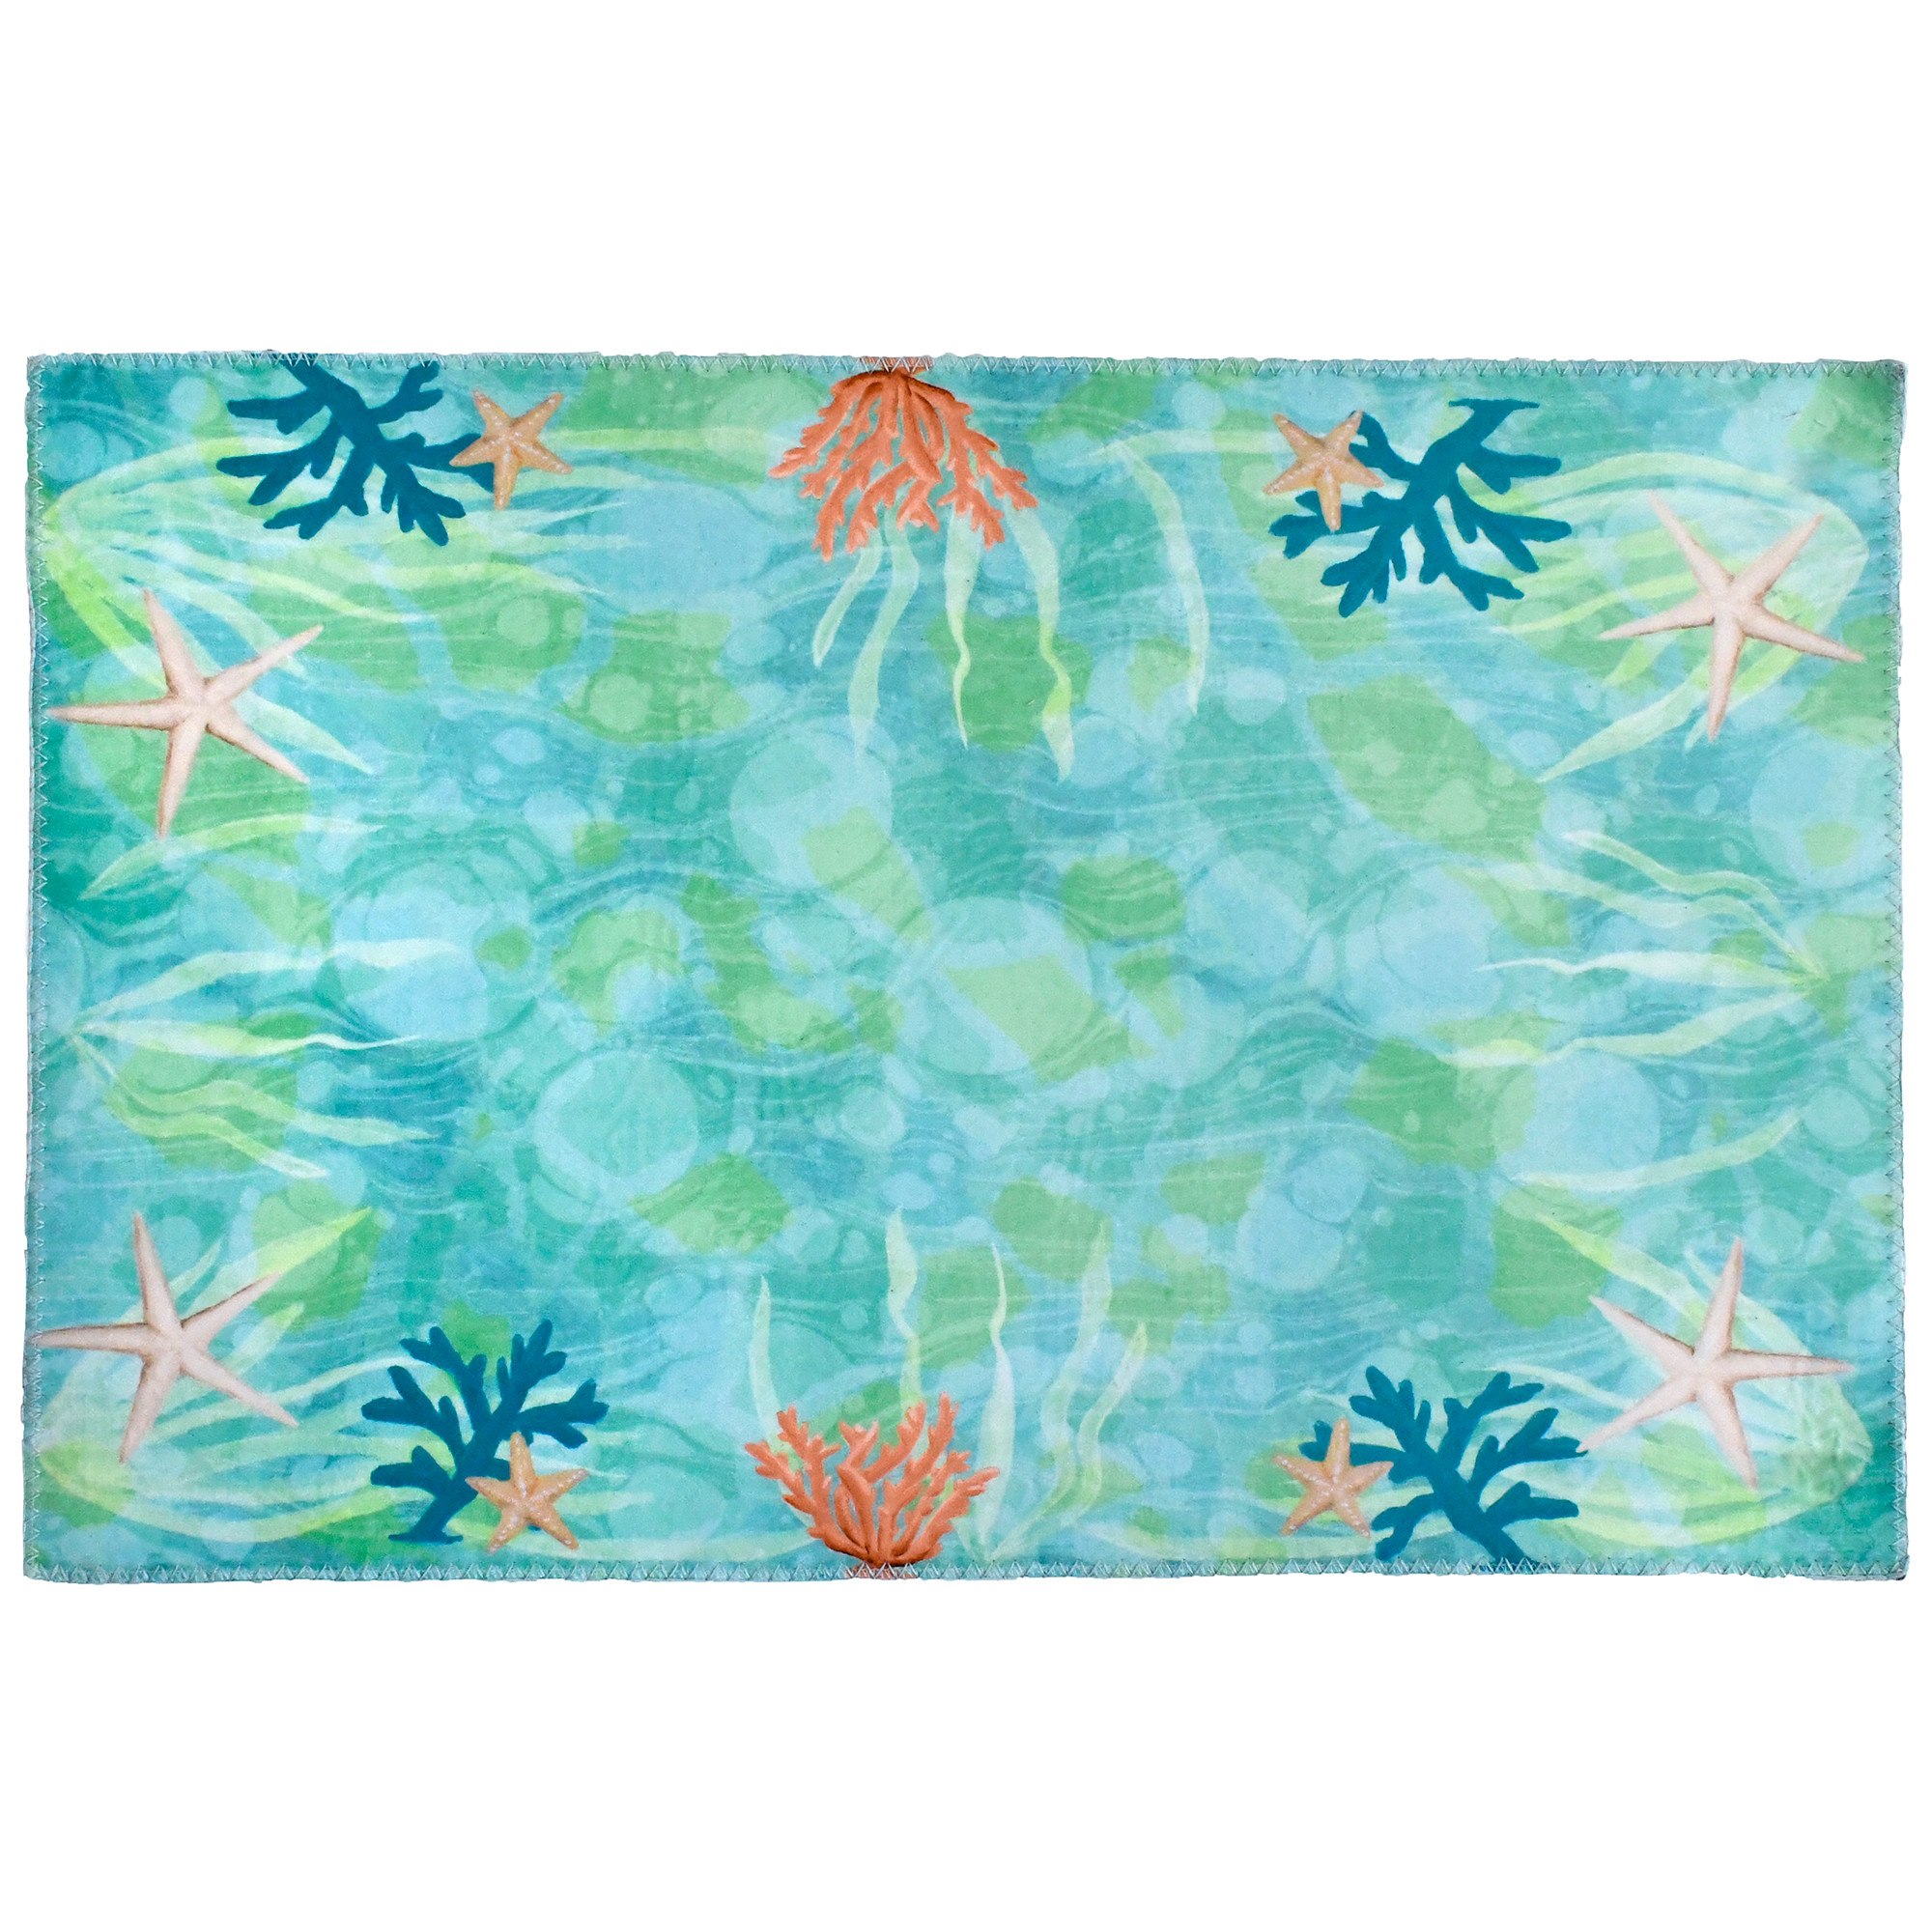 Designer Hugo Edwins has delivered an underwater seascape with this Homefires by Jellybean® poly-sued floor cloth. Muted oceanic hues printed on polyester provide a machine washable floor cloth, thin enough to rest under furniture and provide added mobility for tables and chairs. This suede feel floor cloth is available in four sizes.